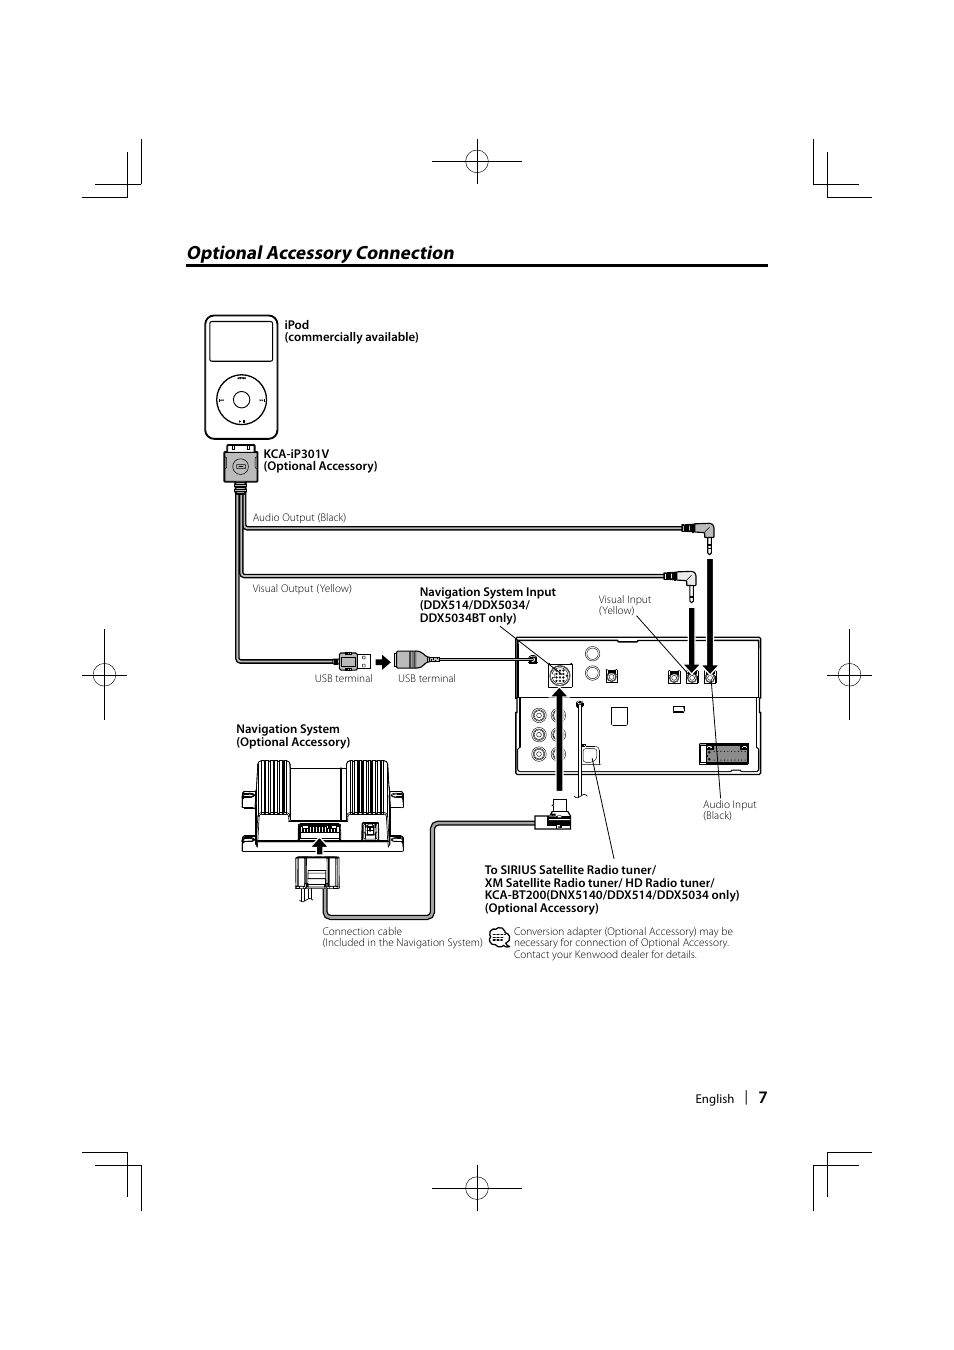 medium resolution of optional accessory connection kenwood ddx5034 user manual page 7 32